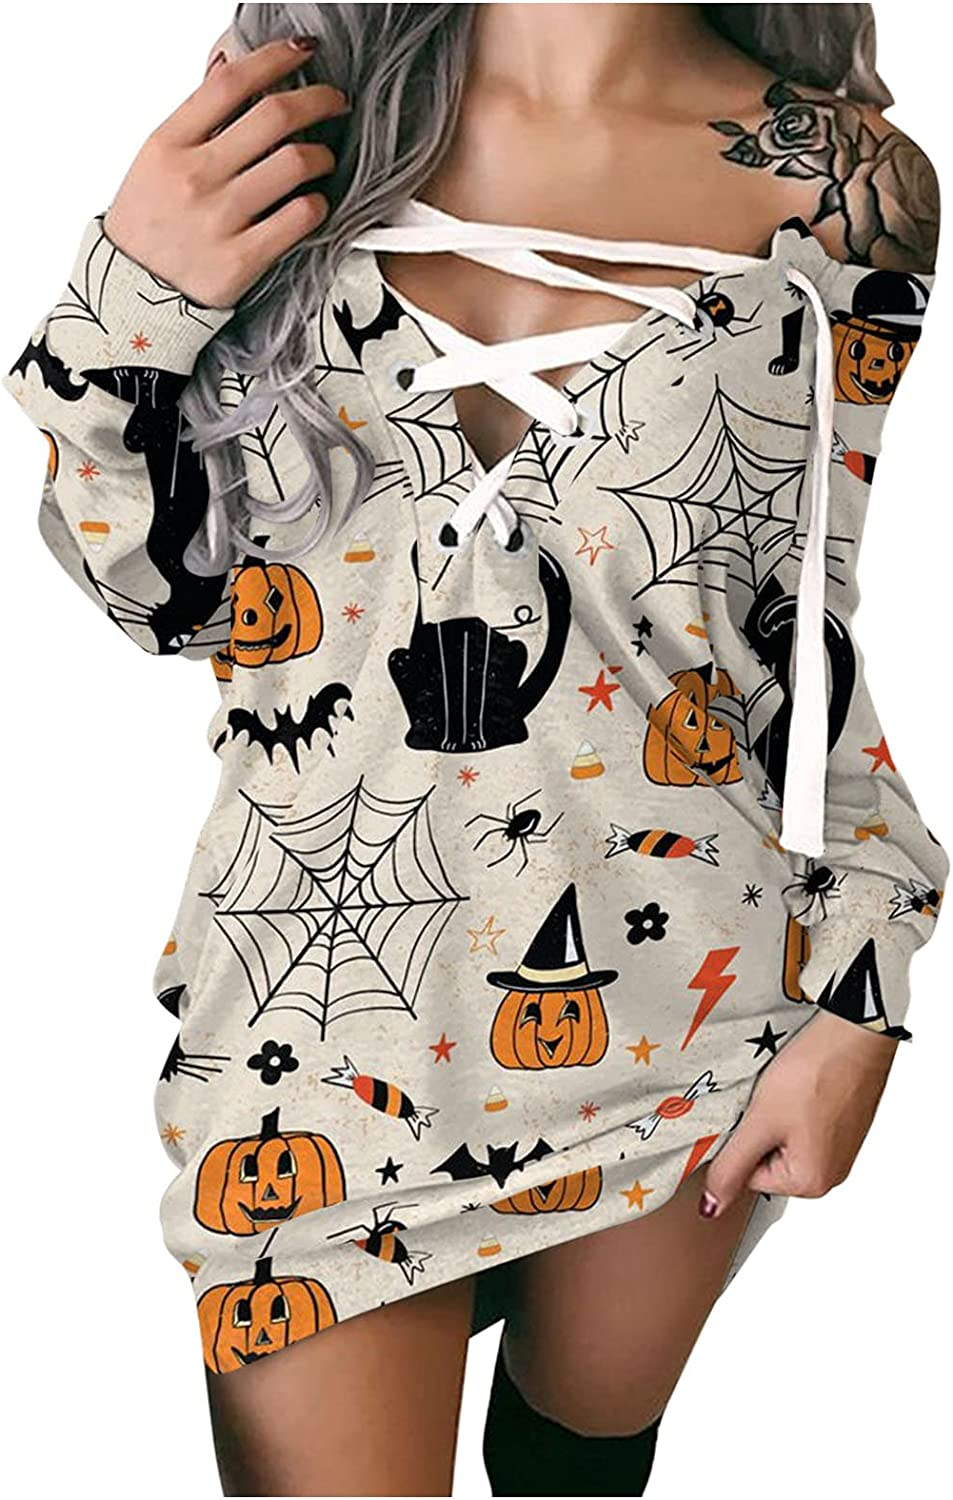 DIJING Women's Halloween Prints Off-Shoulder Long Strappy Sleeve Inventory cleanup selling sale Limited Special Price